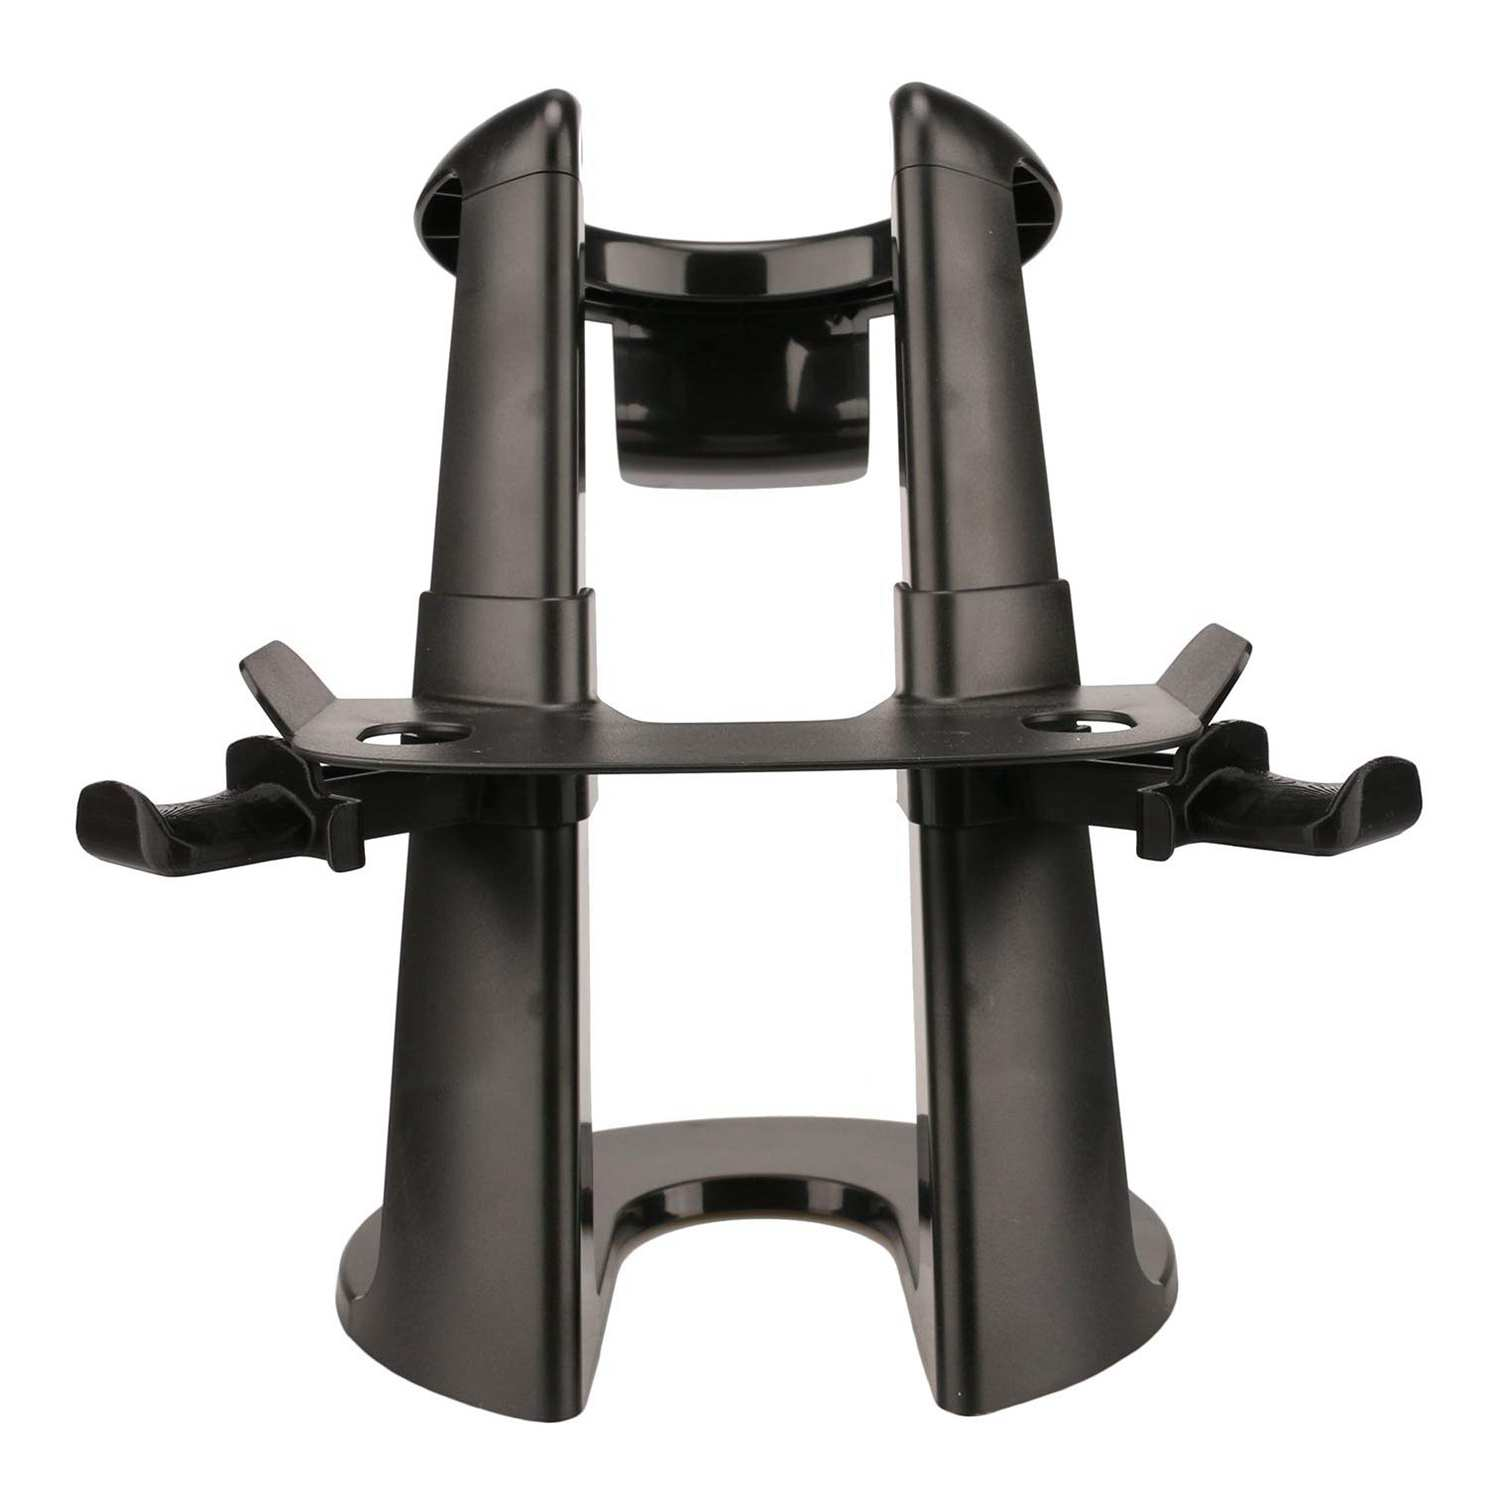 Stand,Headset Display Holder For Oculus Rift Headset And Press ControllerStand,Headset Display Holder For Oculus Rift Headset And Press Controller